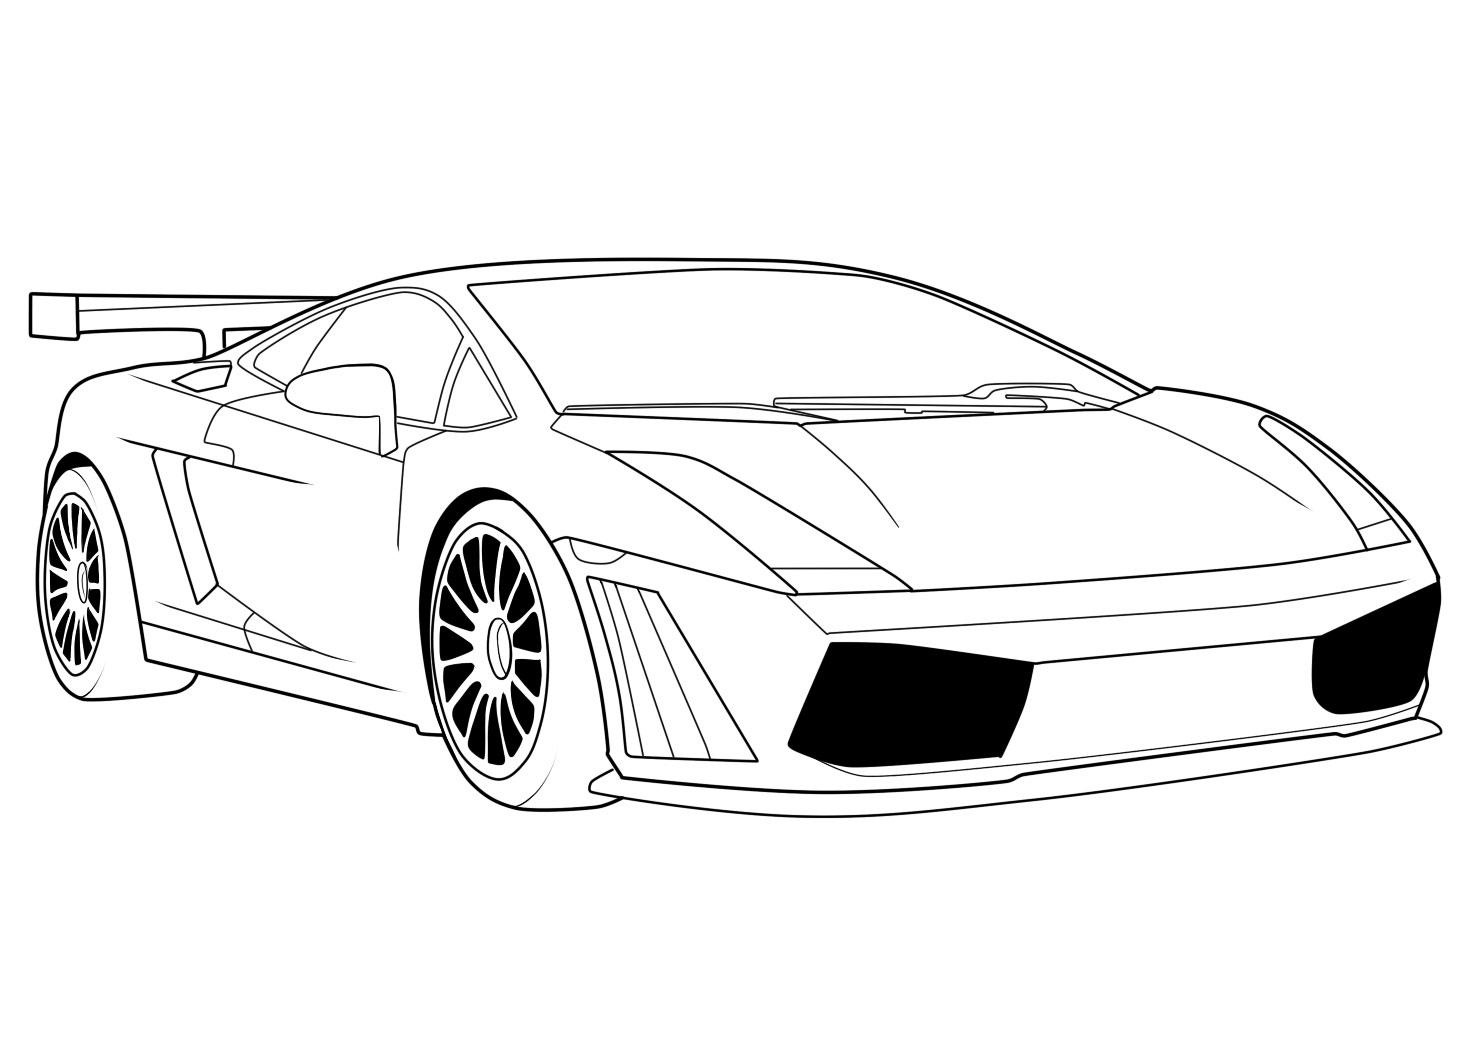 cr7 2015 coloring pictures coloring coloring pages